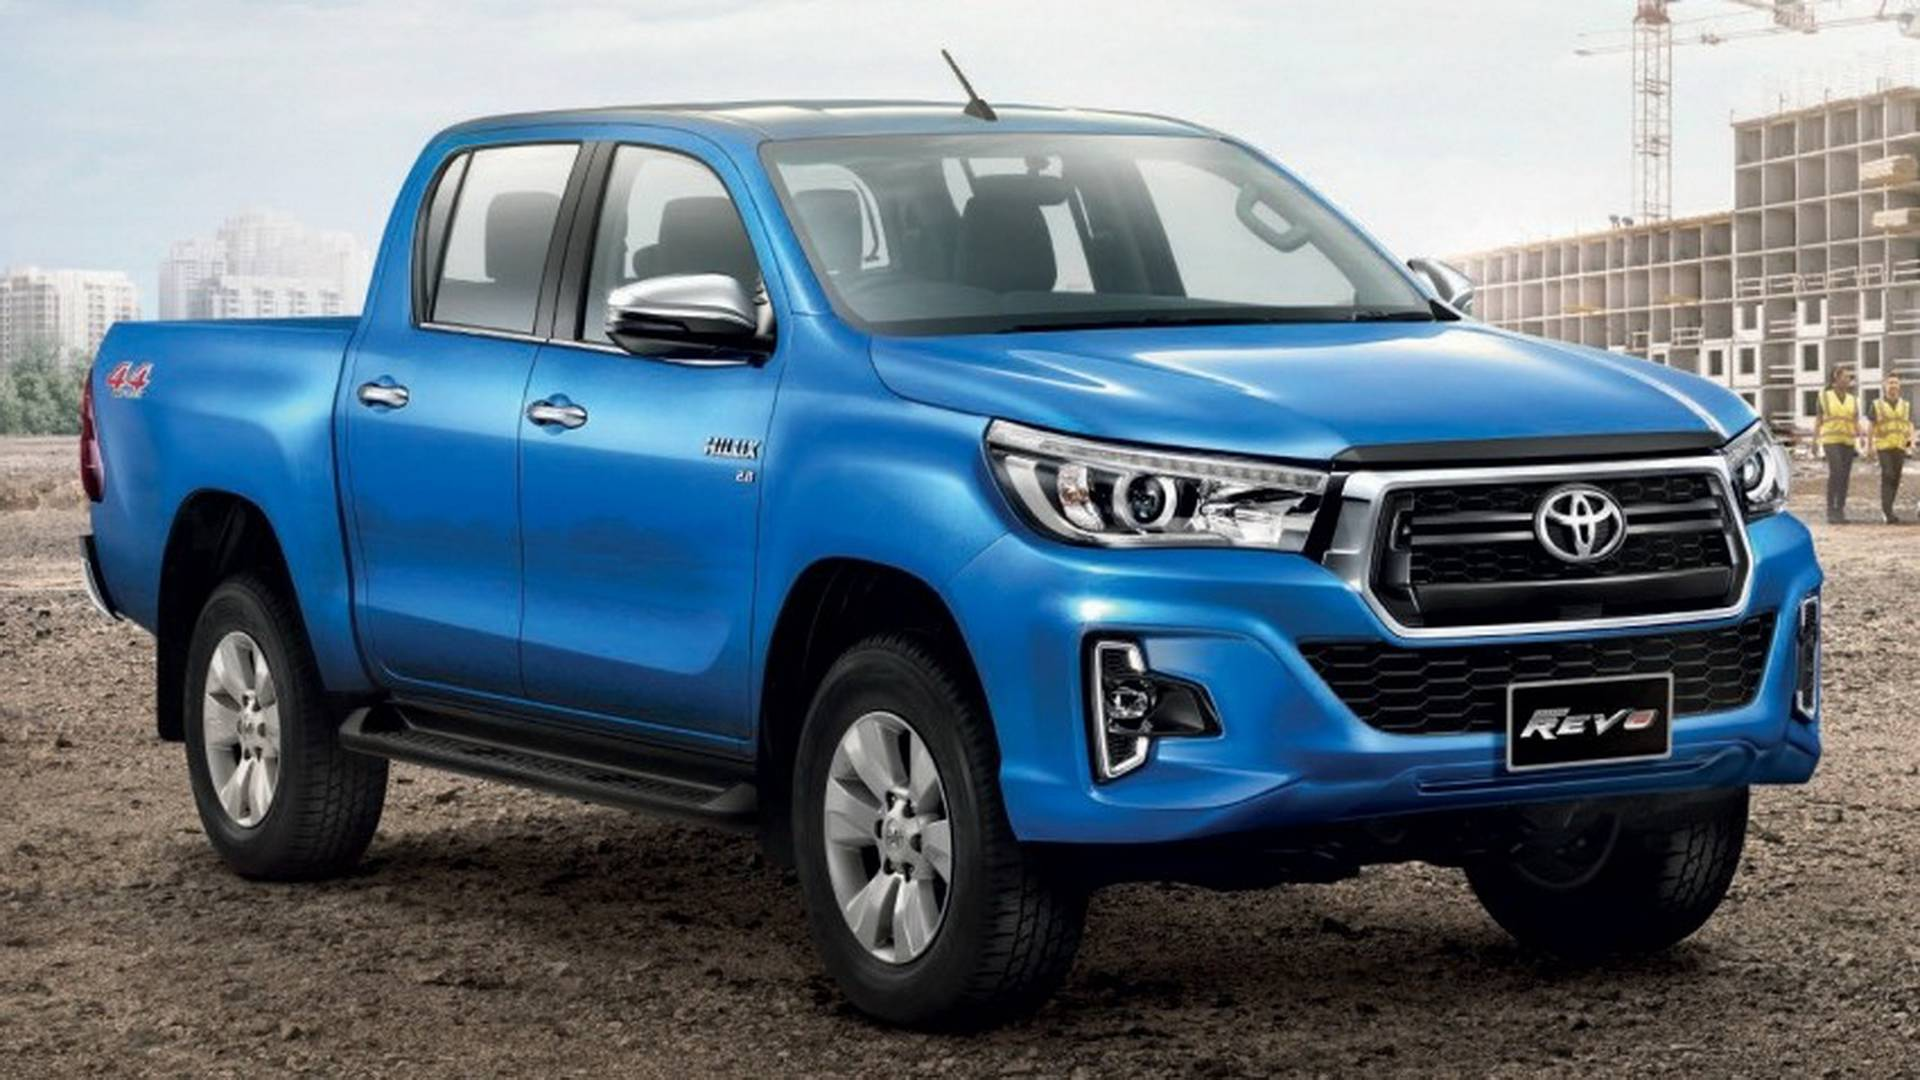 Toyota Hilux 2020 Model, Concept, Facelift, Interior >> 2018 Toyota Hilux Getting Luxurious Version